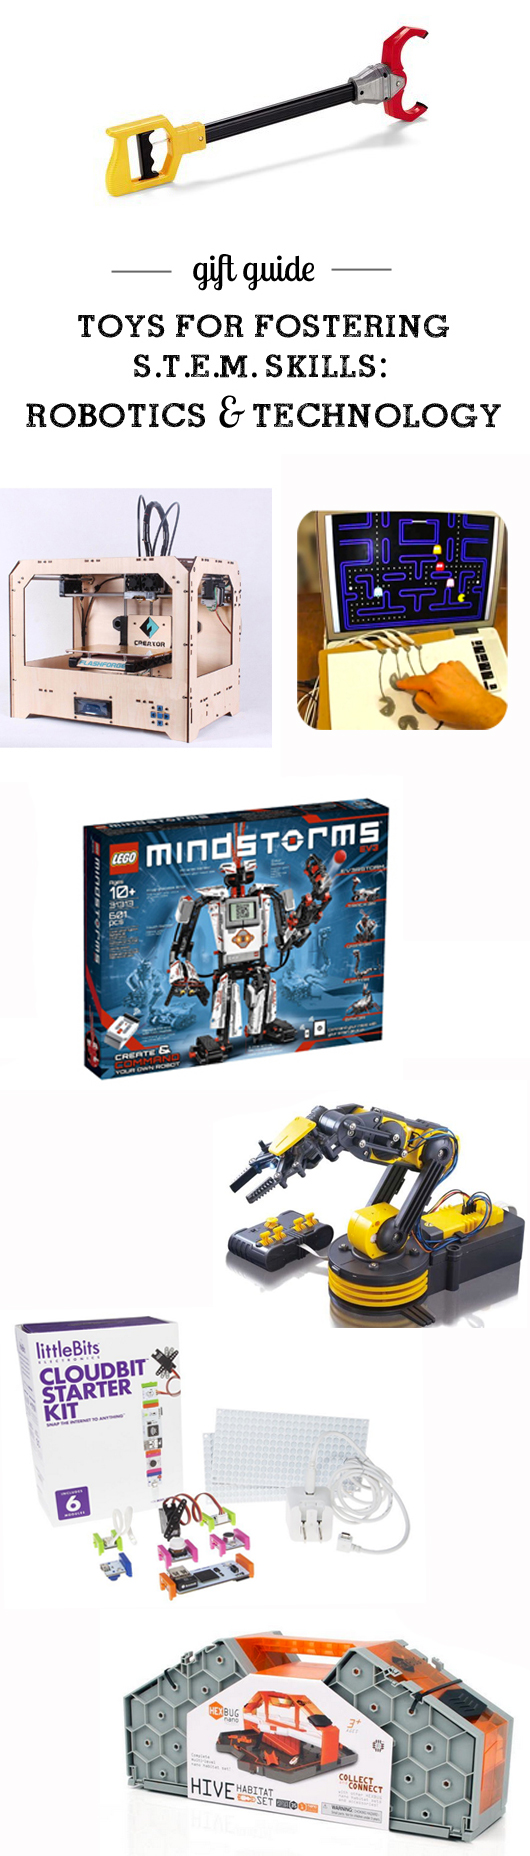 Top toys for building S.T.E.M. (Science, Technology, Engineering & Math) Skills: Robotics & Tech - detailed info. including appropriate age ranges - awesome resource!